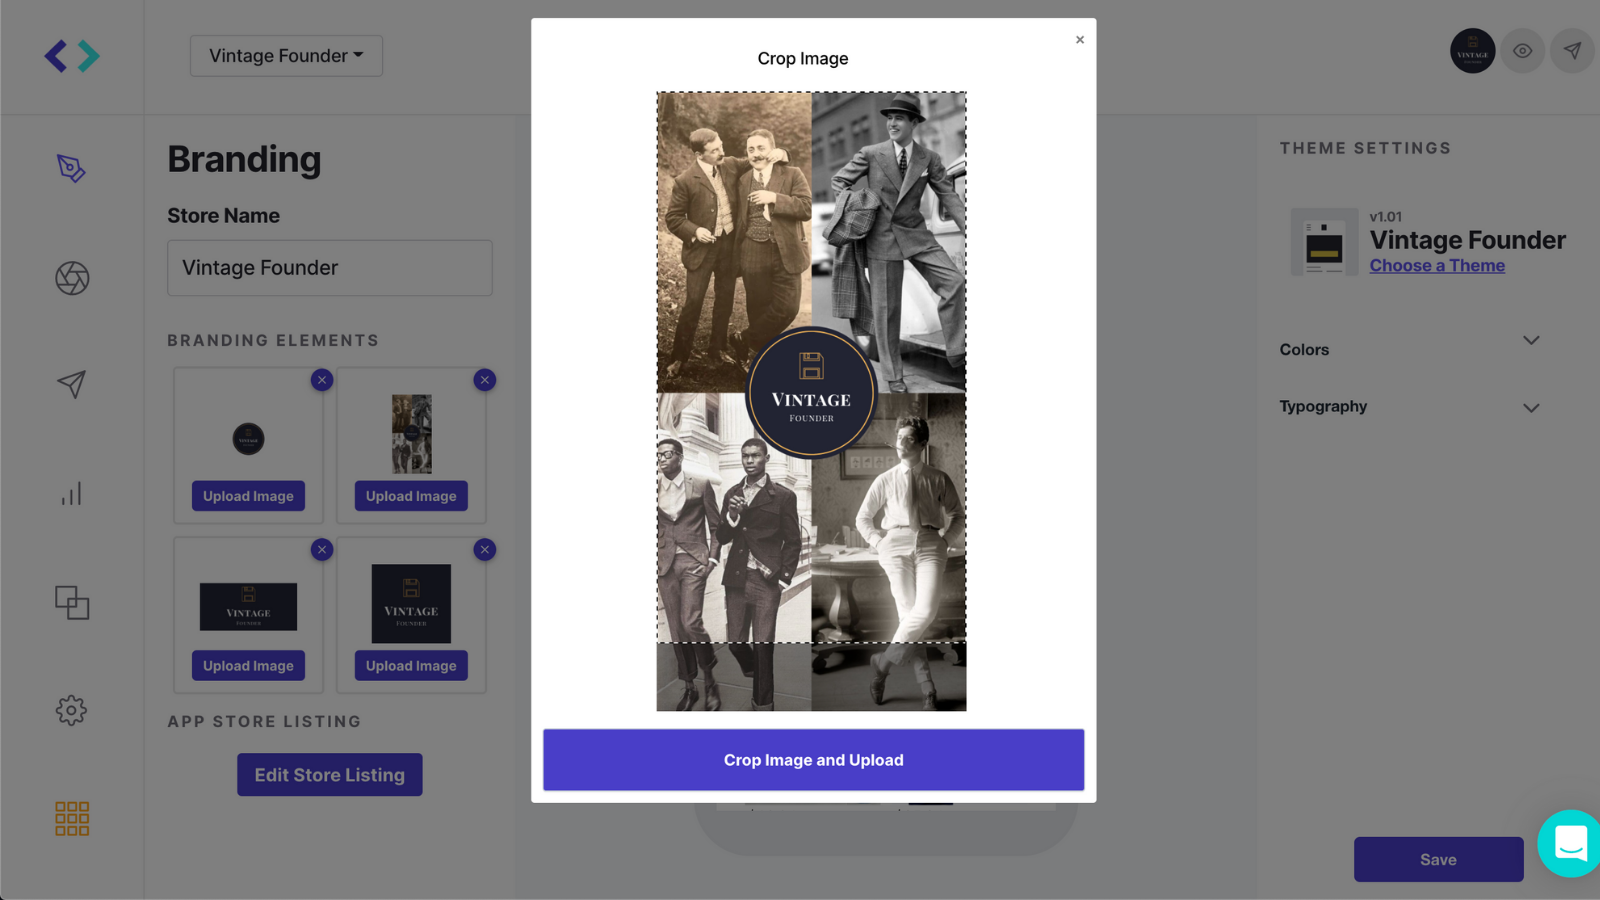 Easily upload and customize to create a bespoke mobile app